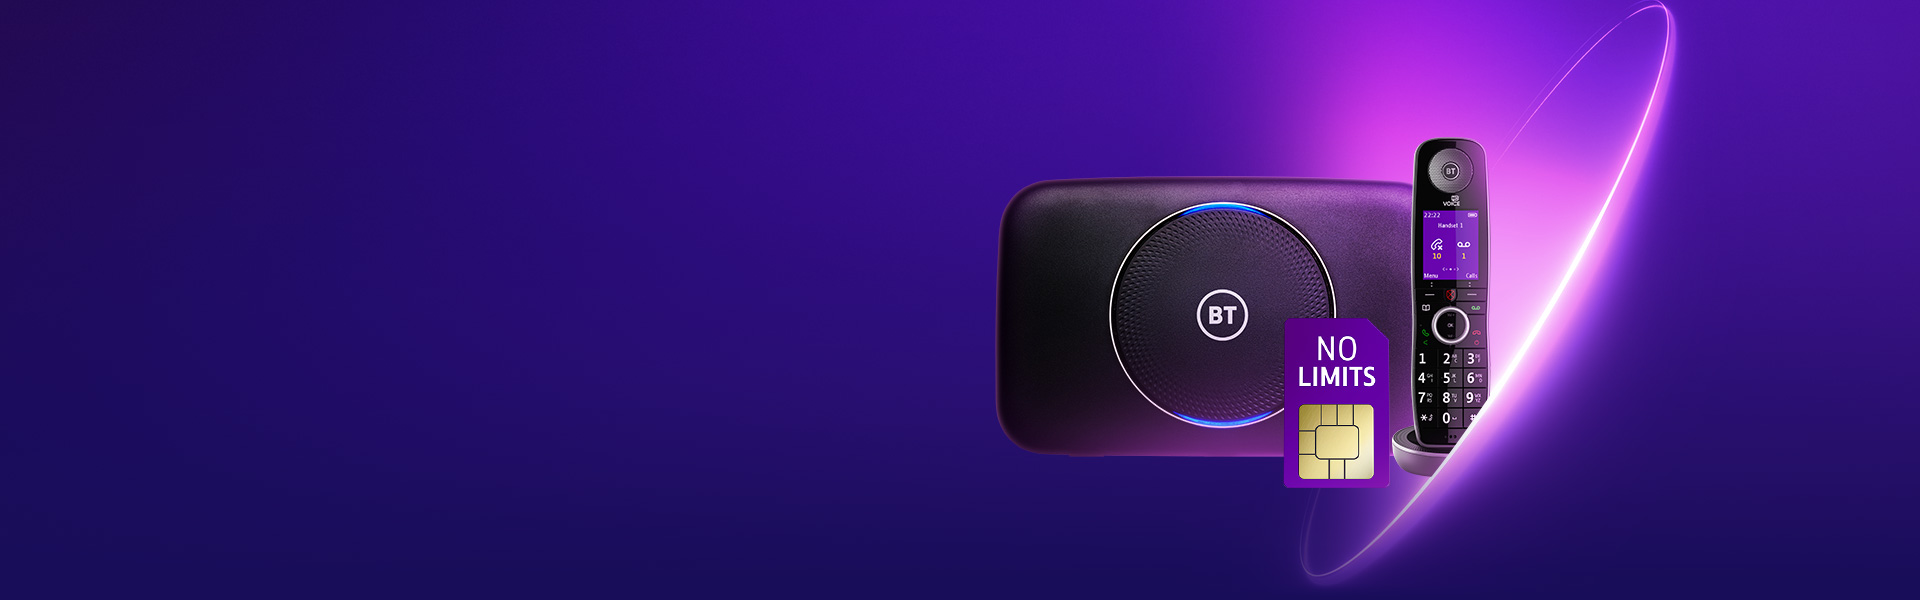 BT No Limits on your mobile, home phone and broadband